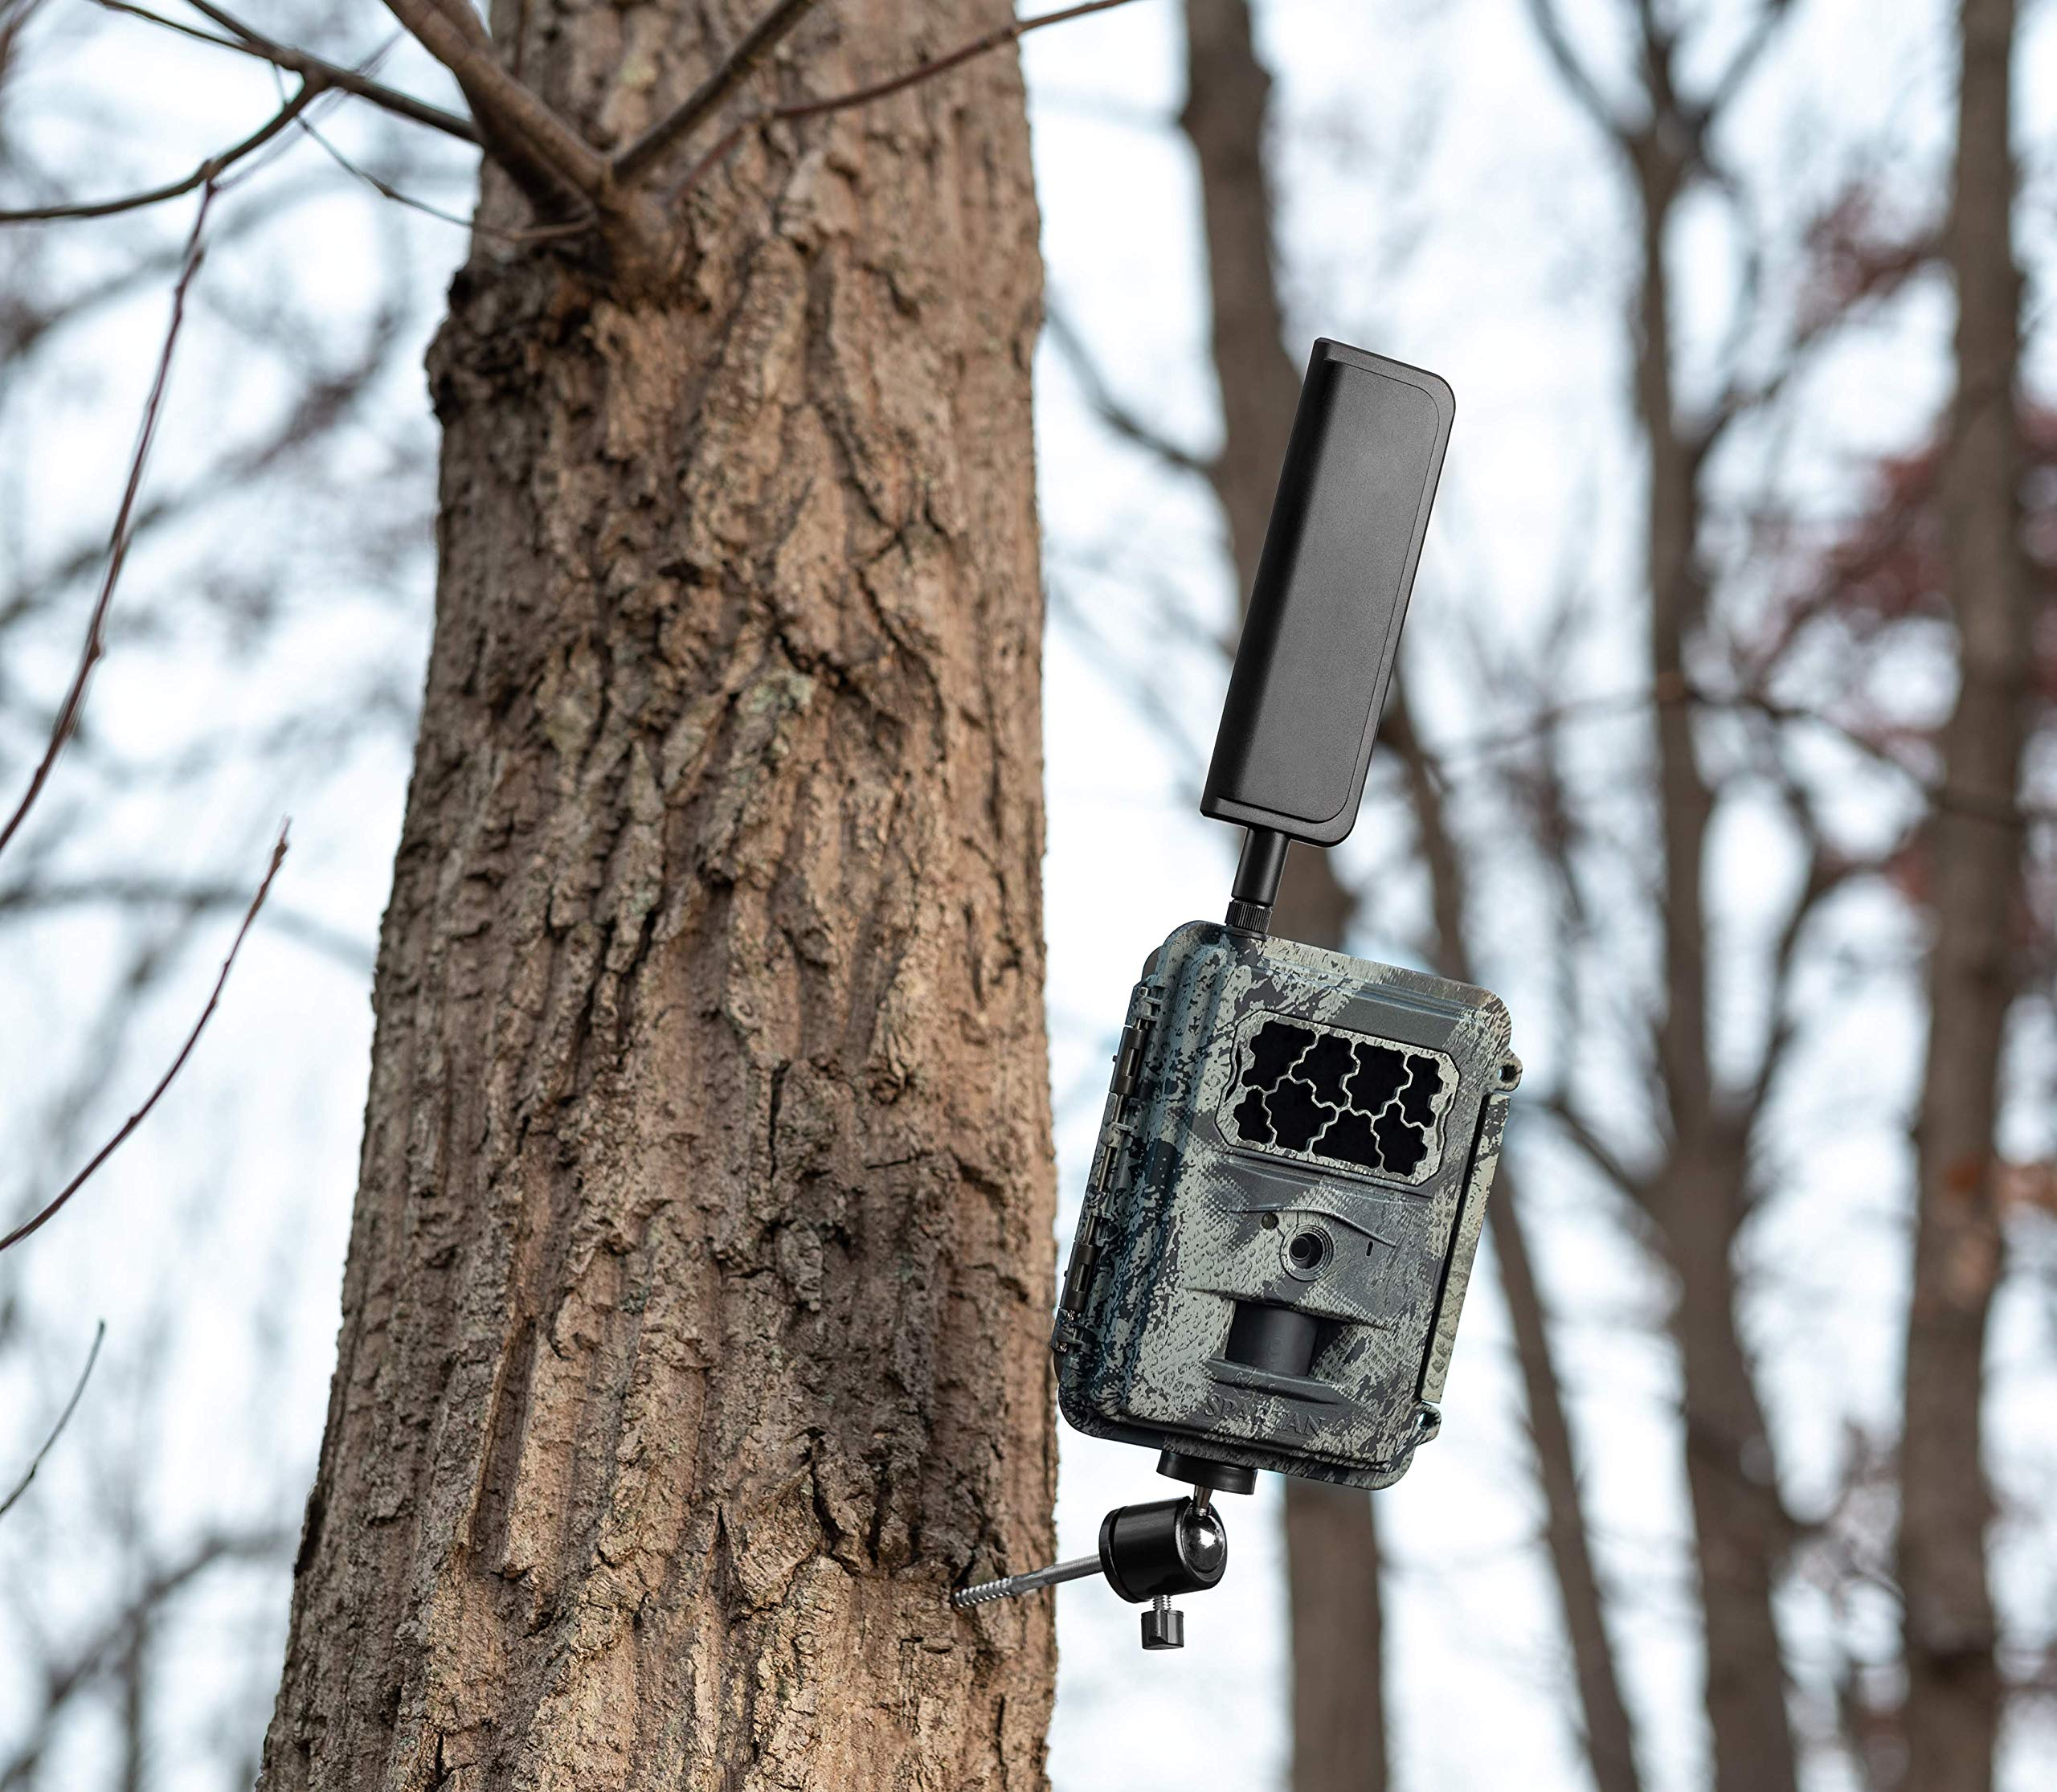 Spartan 4G LTE GoCam Wireless Trail Camera with Mount, AT&T Blackout (Verizon Also Available) by SPARTAN (Image #4)